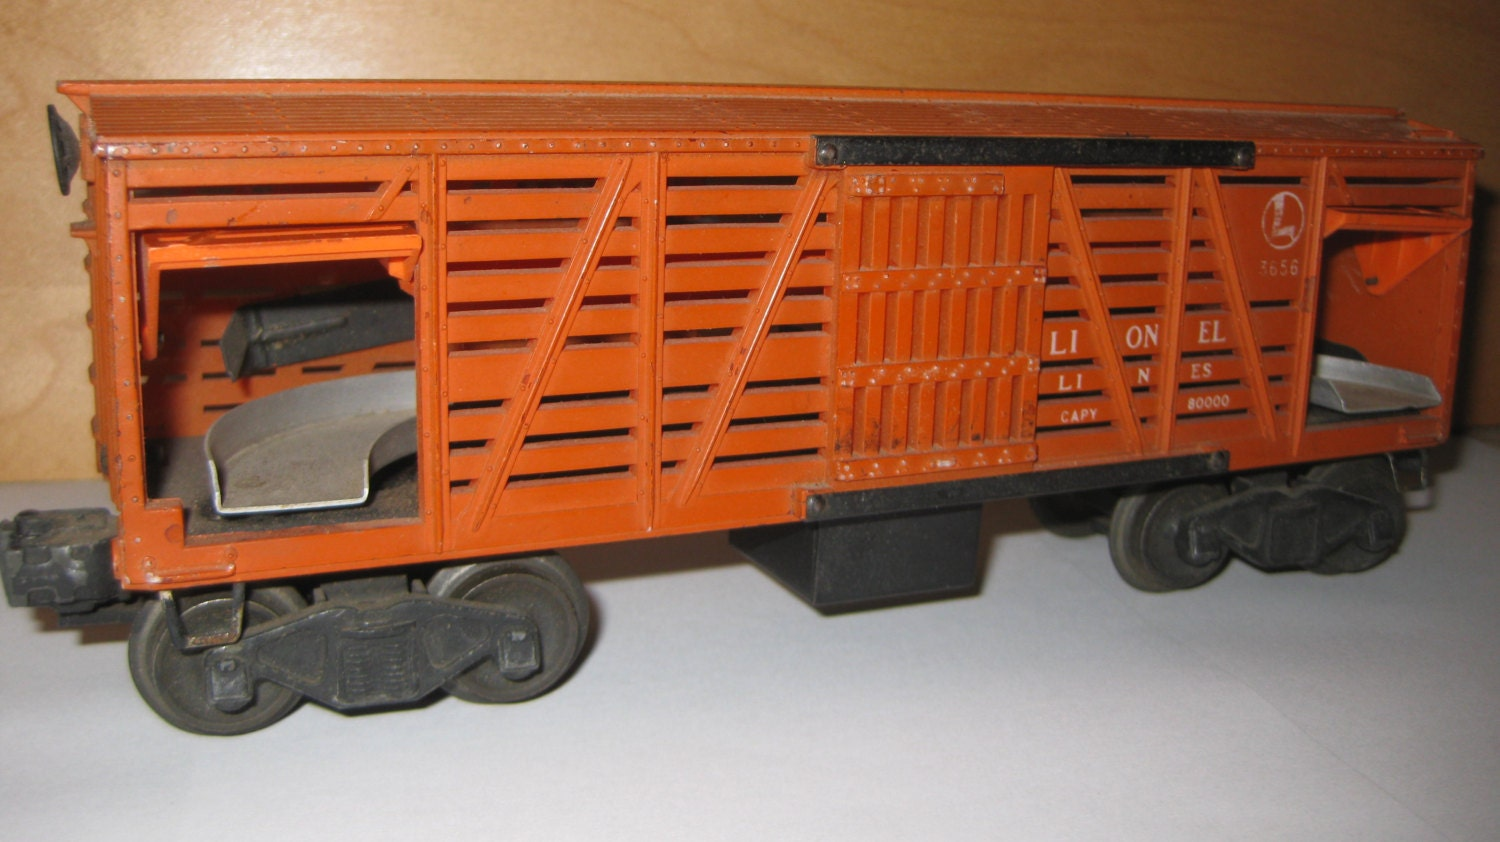 Wiring Diagram Lionel Cattle Car : Lionel cattle car no rust collectible on sale